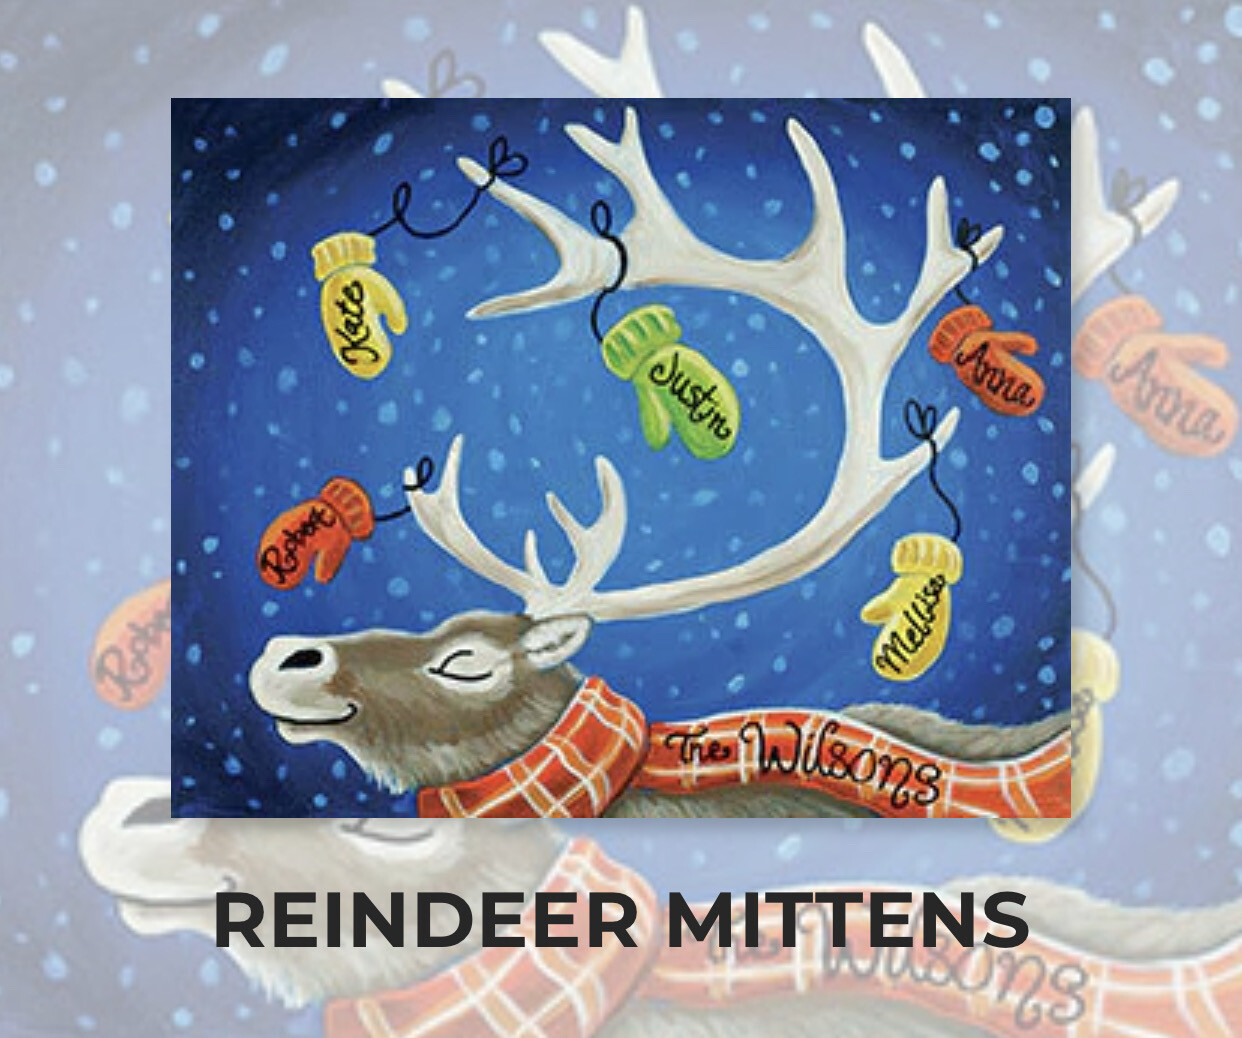 Reindeer Mittens ADULT Acrylic Paint On Canvas DIY Art Kit - 3 Week Special Order